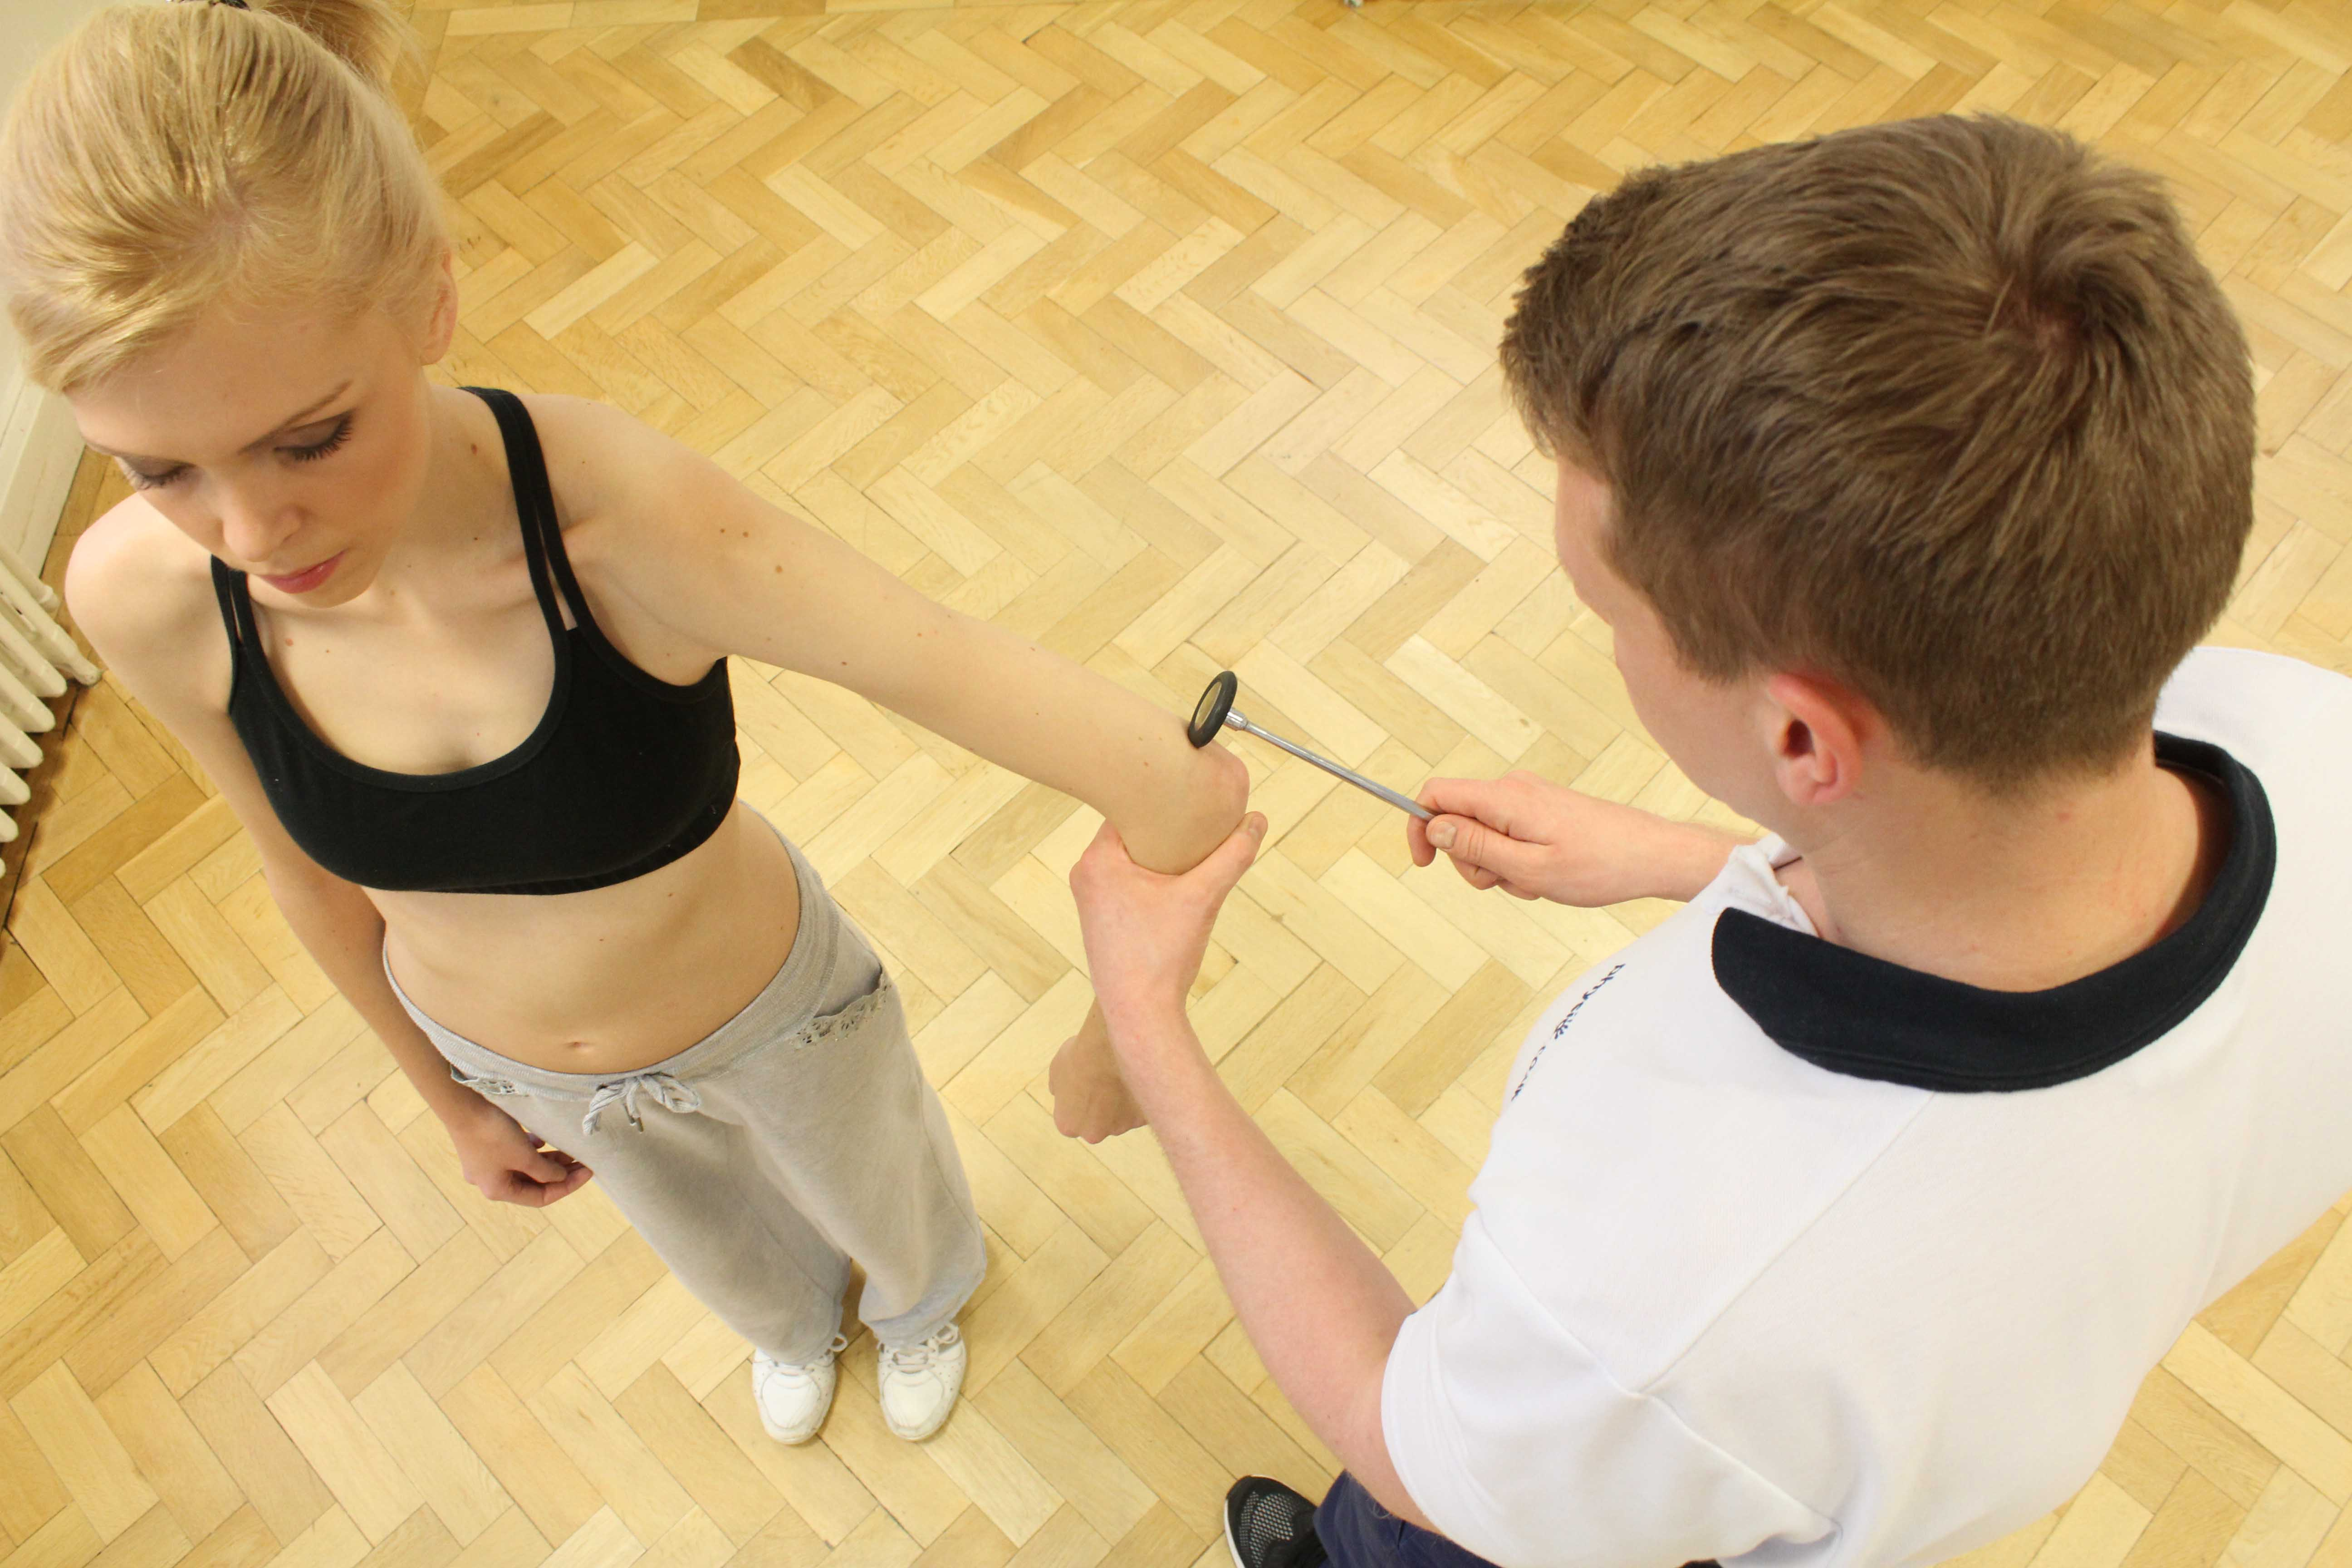 Specialist musculoskeletal Physiotherapist testing tendon reflexes at the elbow